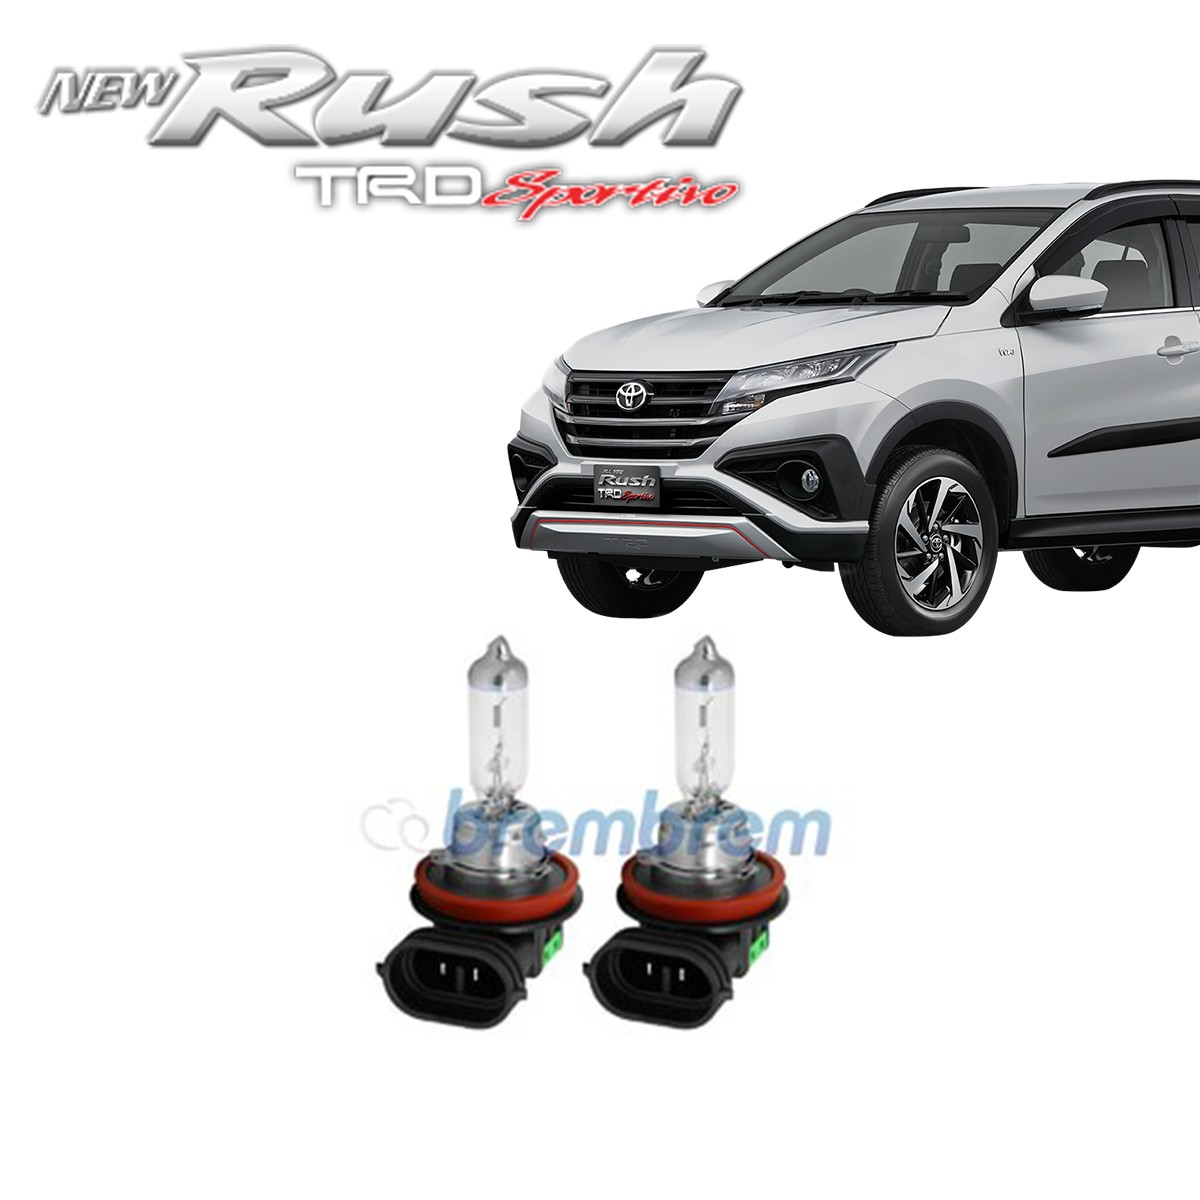 PHILIPS XTREME VISION H11 (3700K) - LAMPU HALOGEN TOYOTA ALL NEW RUSH